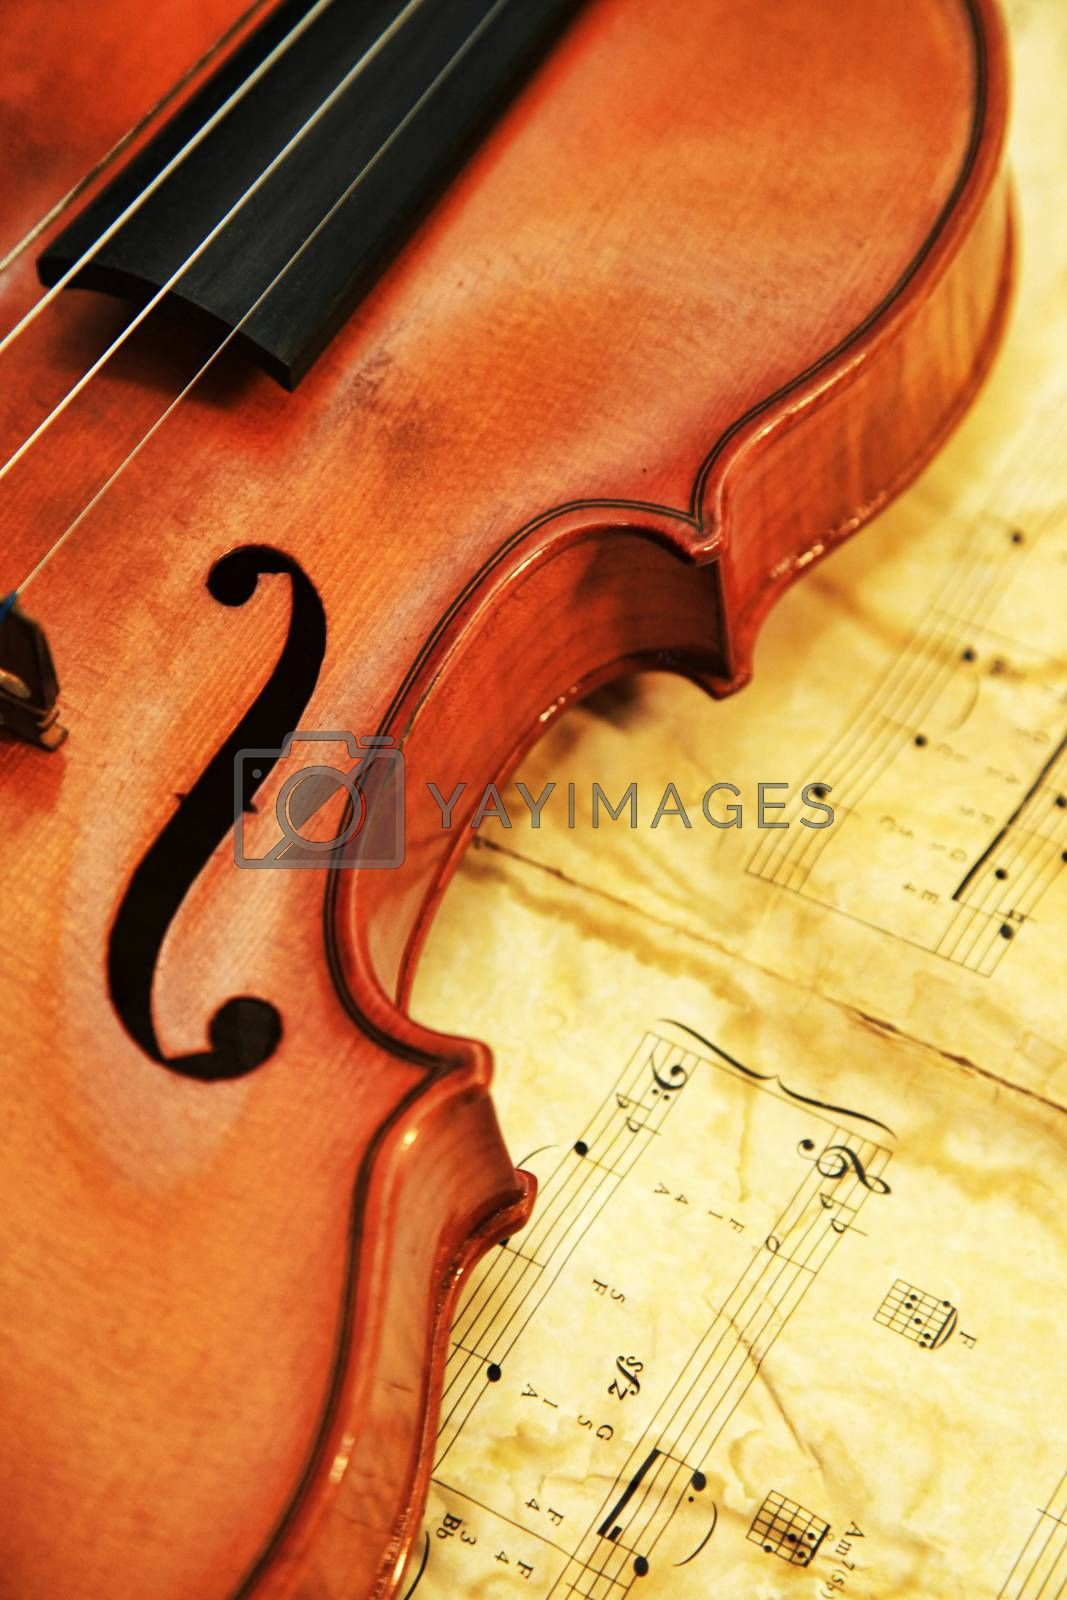 1937 old violin on the background of notes